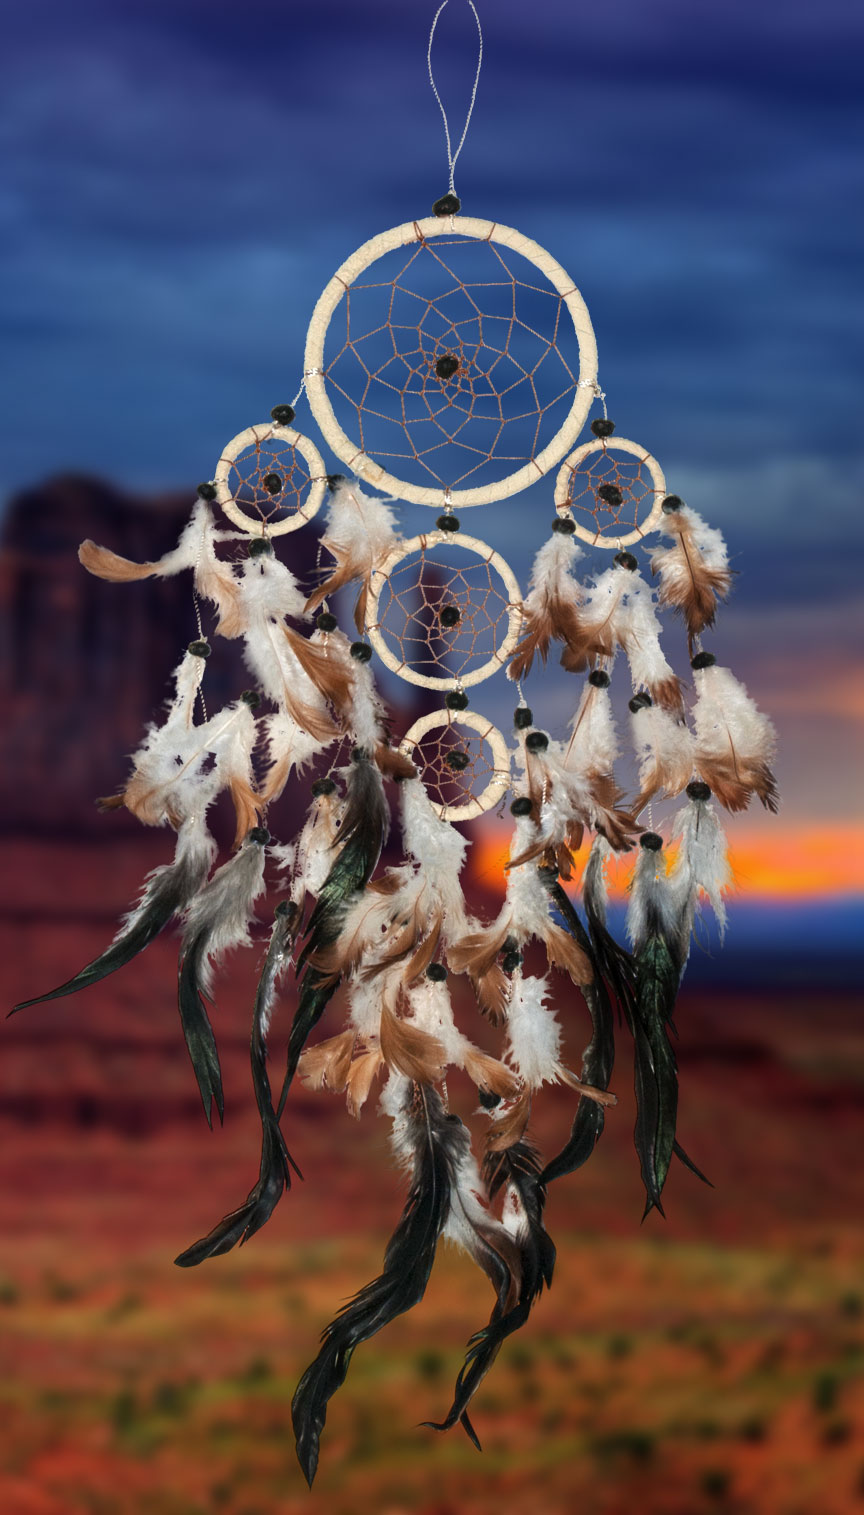 Shows an image of dreamcatcher owg012 on a scenic background